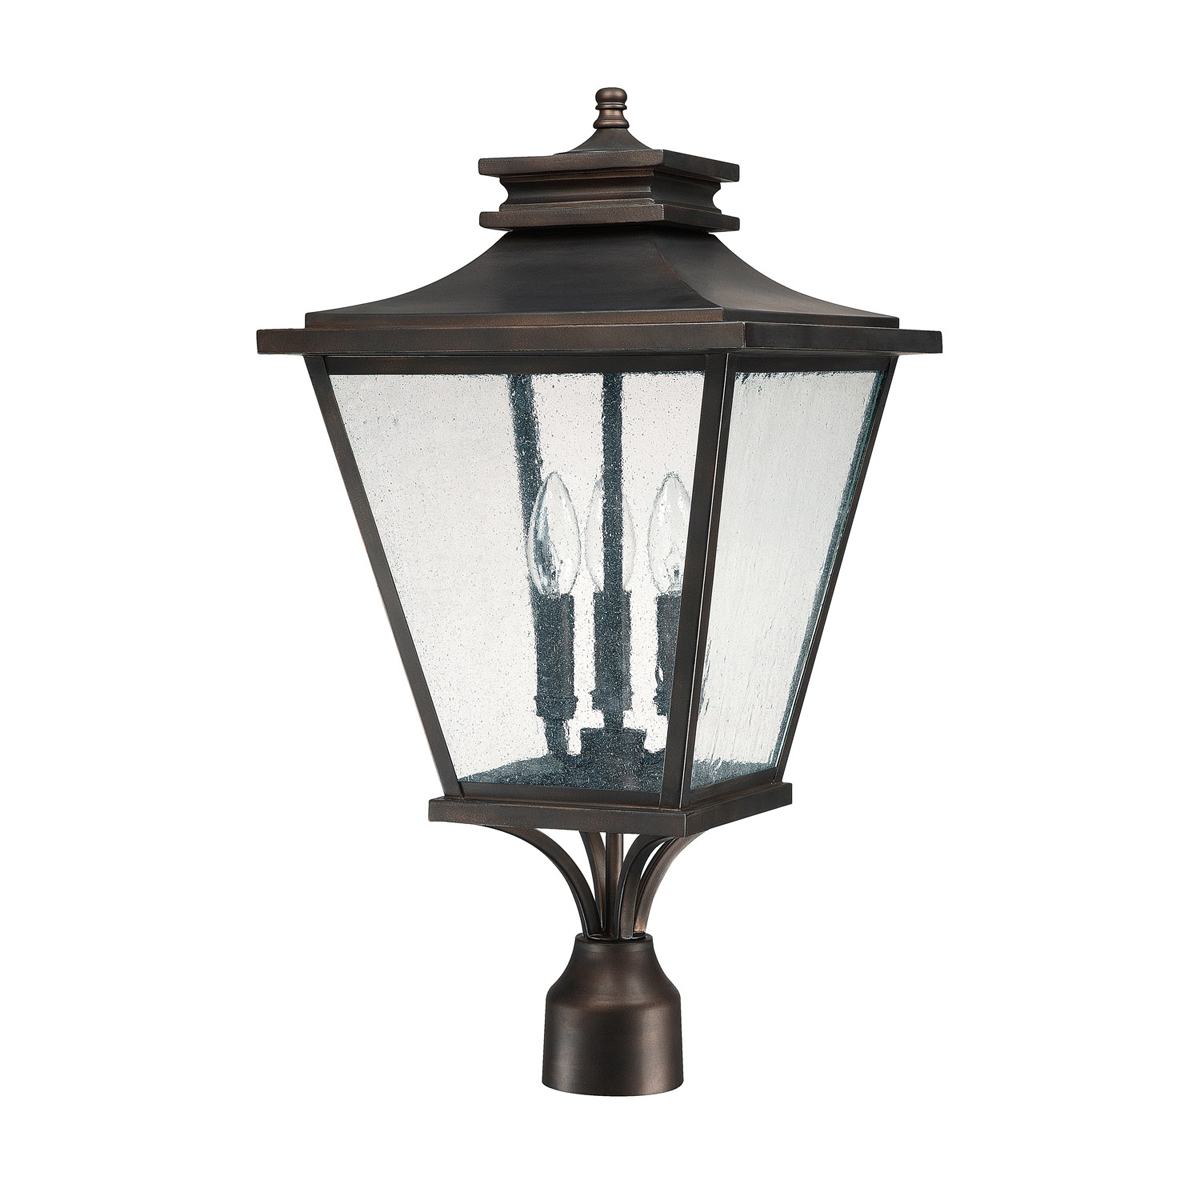 Capital lighting 9466 gentry 3 light outdoor post lantern for Outdoor light post fixtures